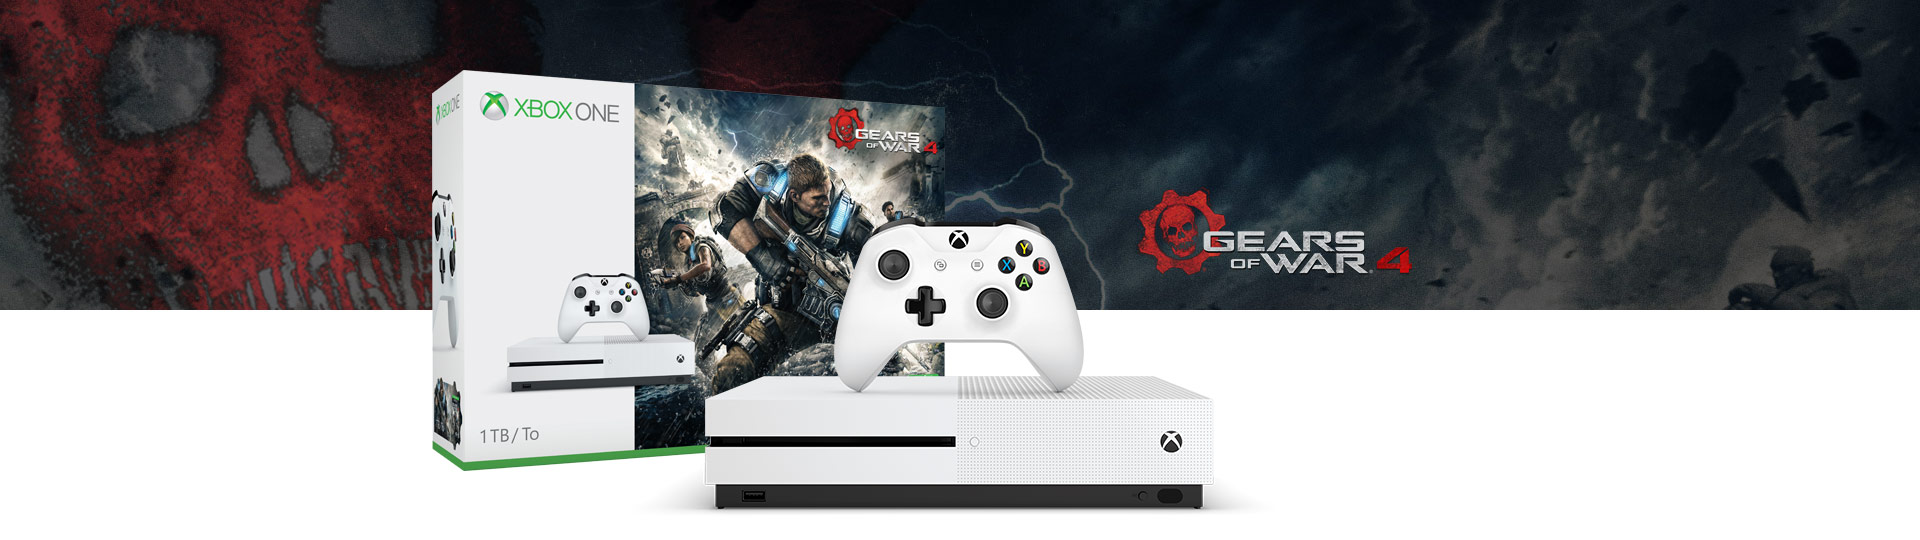 xbox-gears-of-war